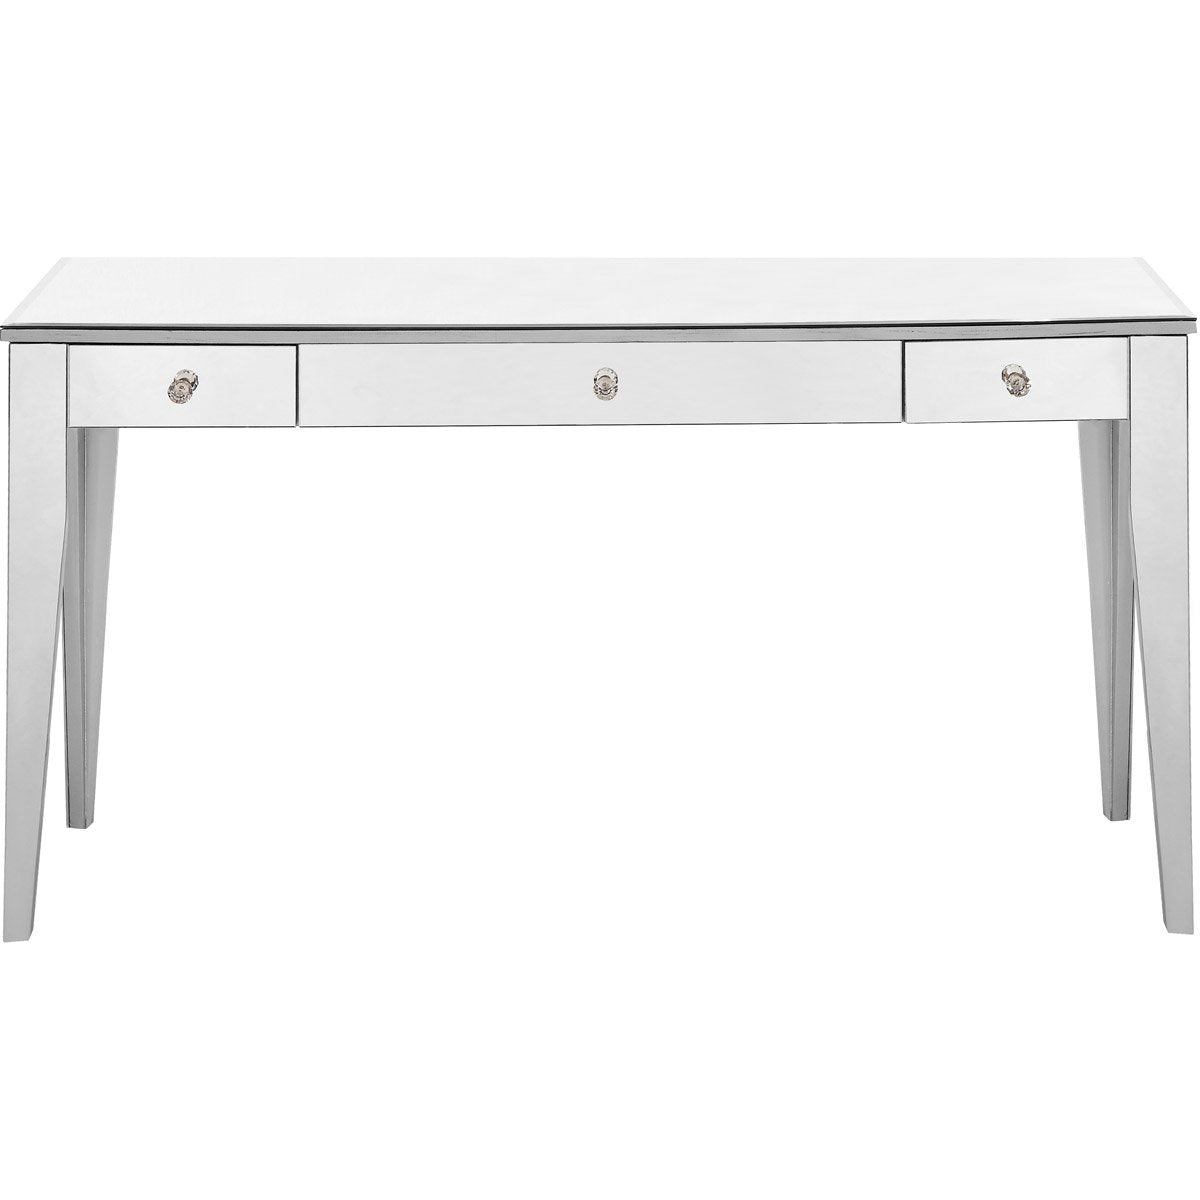 Contempo 54 X 30 3 Drawer Rectangle Table - Antique Silver Finish (Mf6-1030S) Rectangle Table